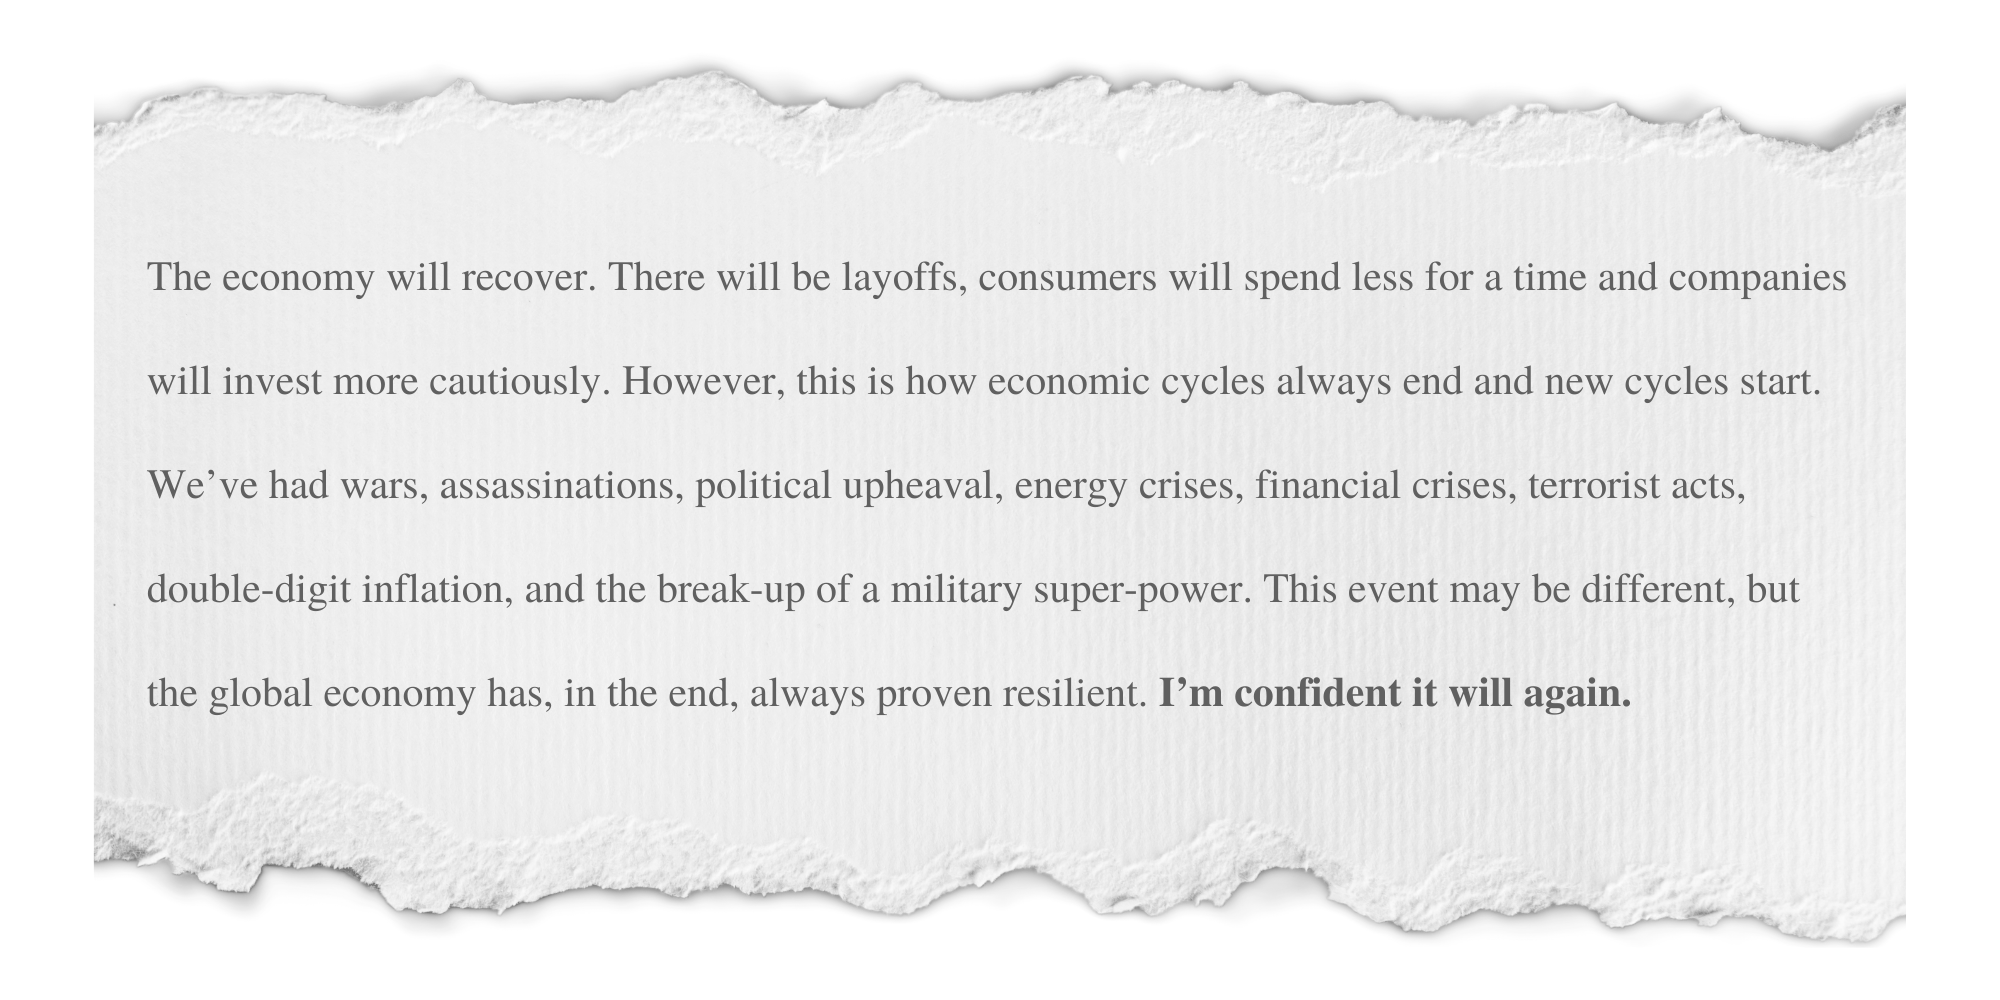 """Excerpt from letter: """"The economy will recover. There will be layoffs, consumers will spend less for a time and companies will invest more cautiously. However, this is how economic cycles always end and new cycles start. We've had wars, assassinations, political upheaval, energy crises, financial crises, terrorist acts, double-digit inflation, and the break-up of a military super-power. This event may be different, but the global economy has, in the end, always proven resilient. I'm confident it will again."""" Click for full letter."""